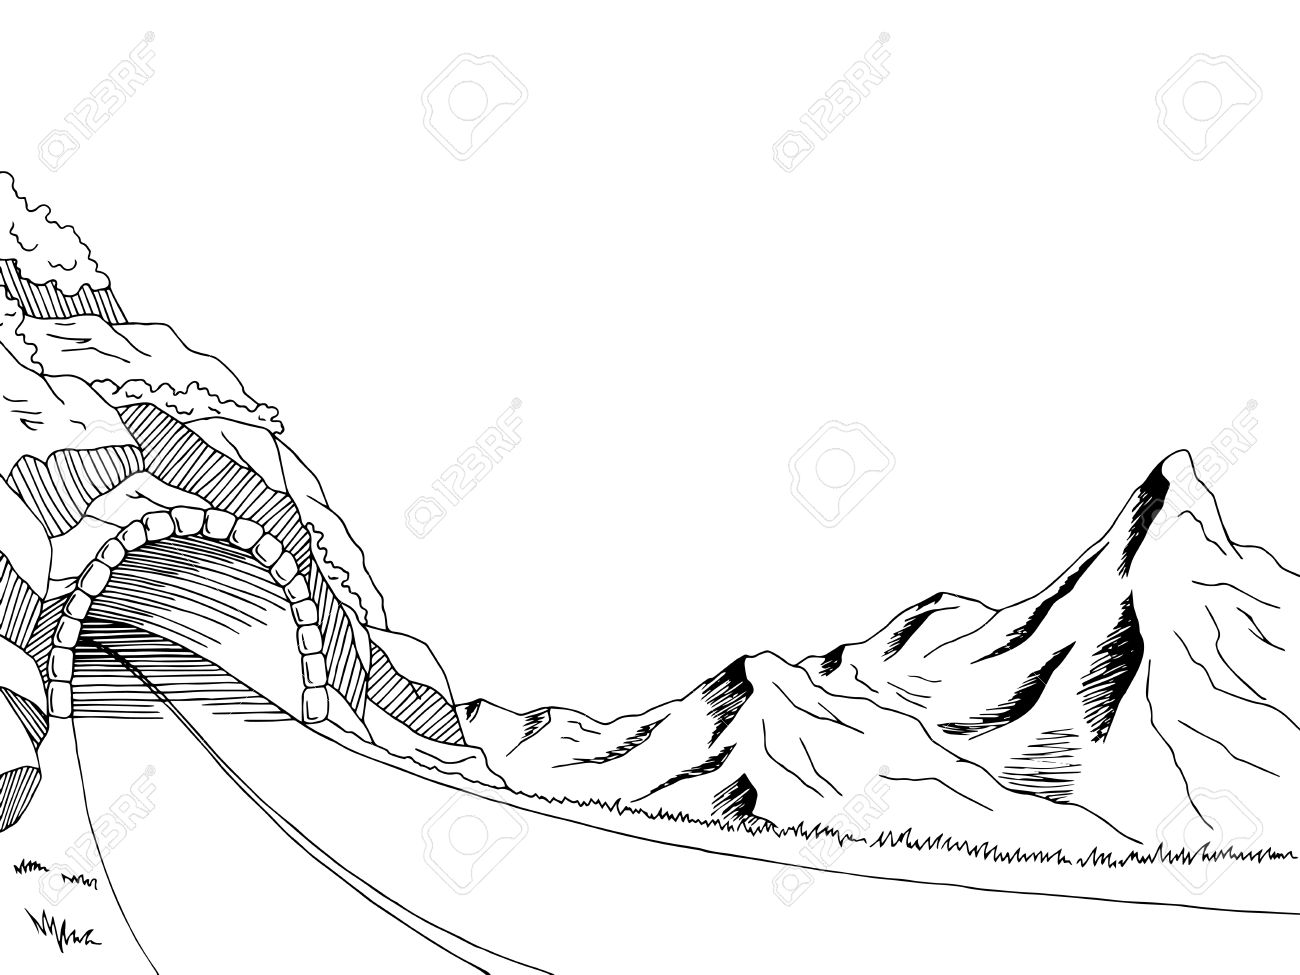 1300x975 Mountain Road Tunnel Graphic Art Black White Landscape Sketch